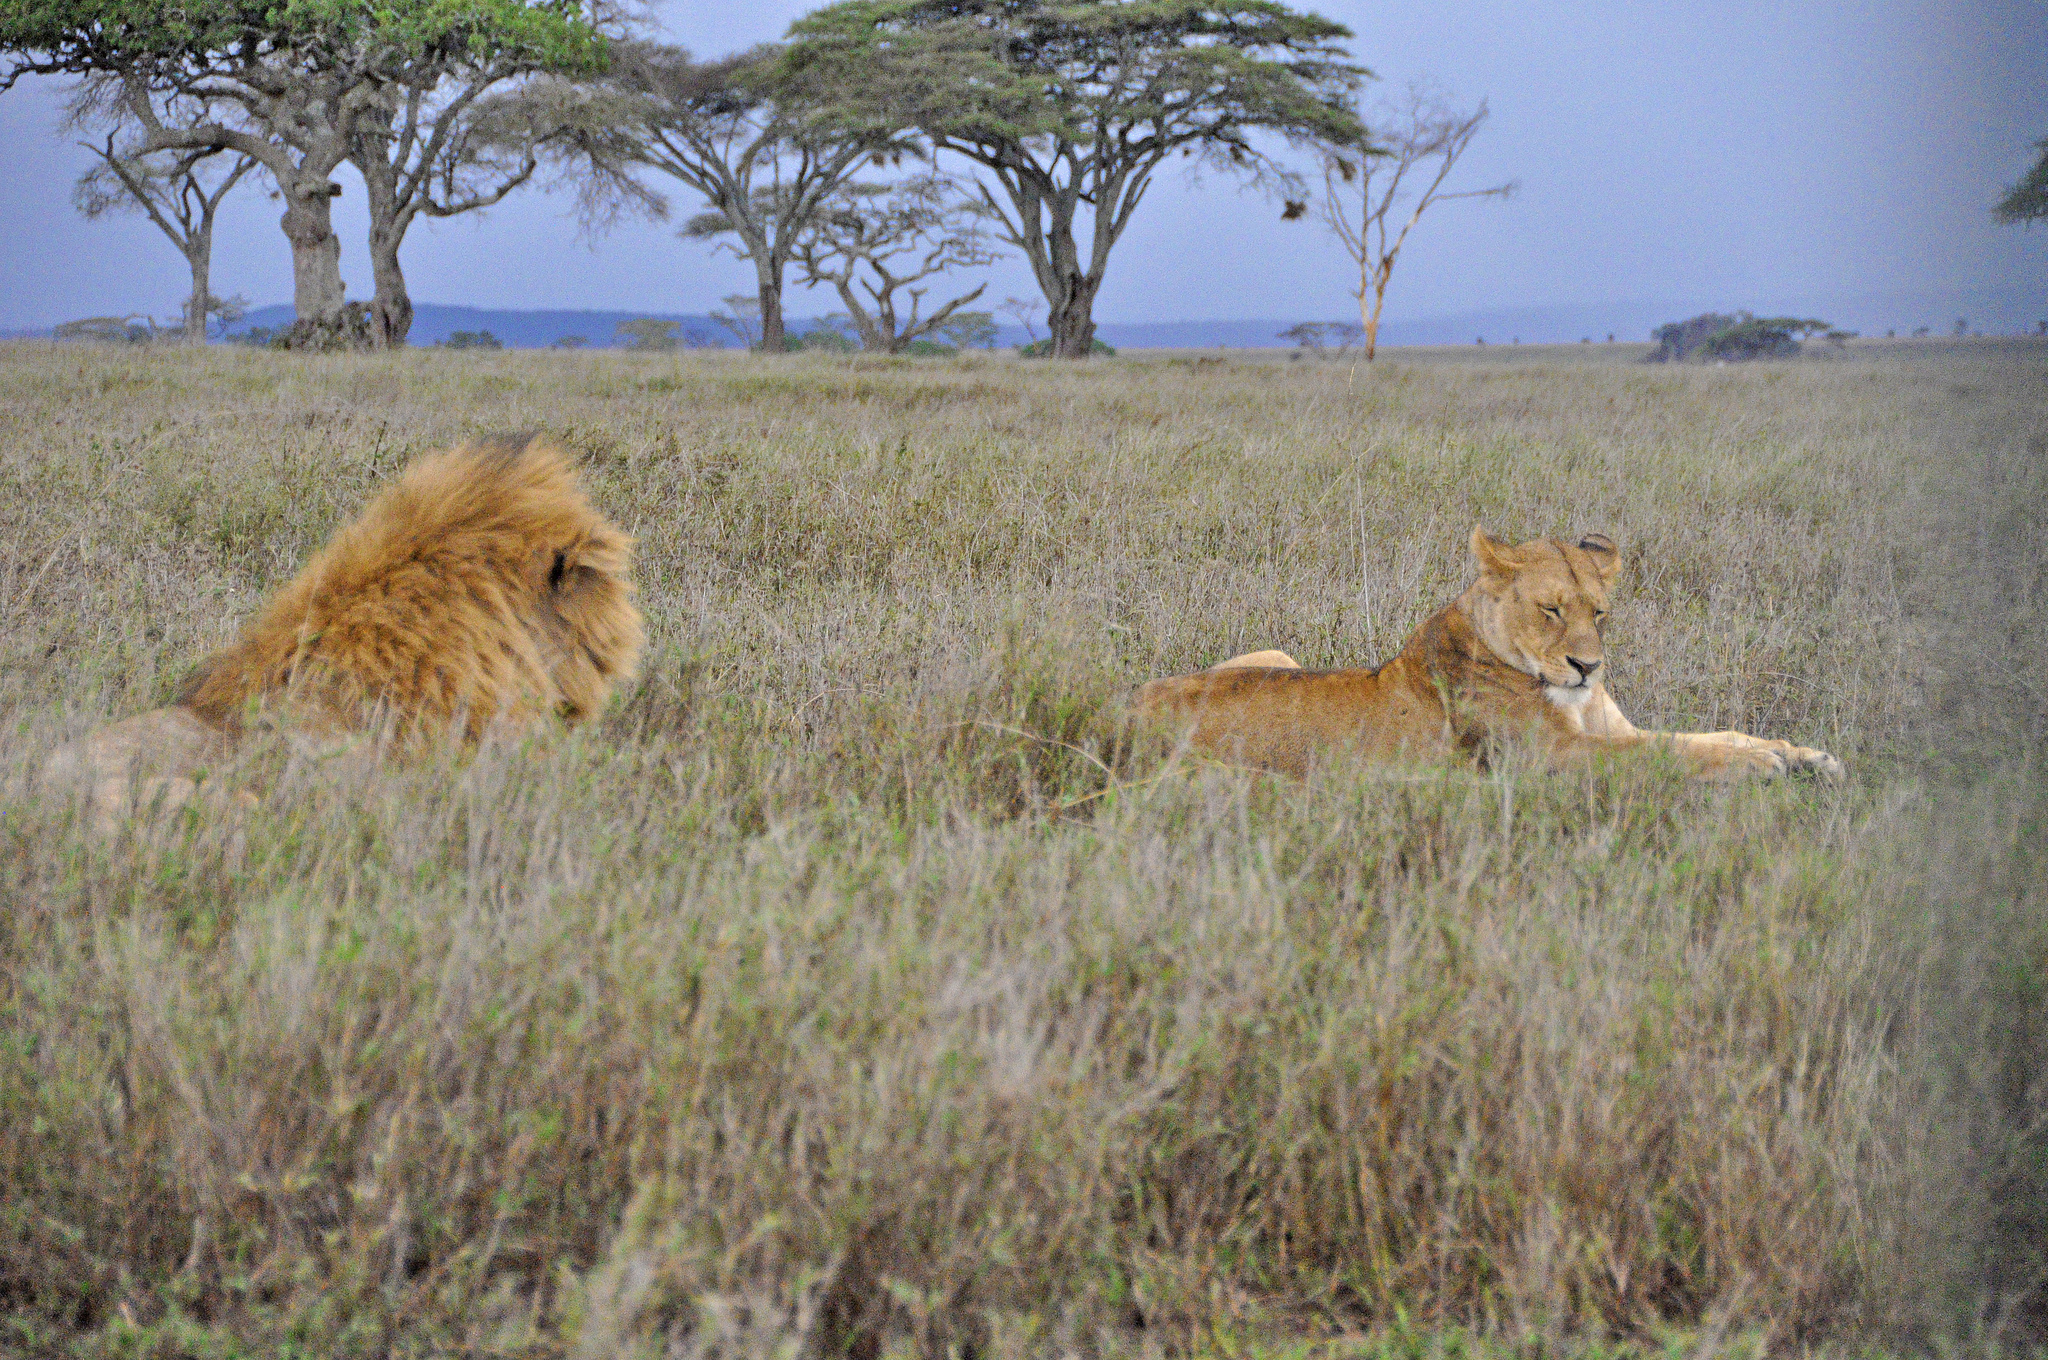 Free download high resolution image - free image free photo free stock image public domain picture -Masai Mara Lion